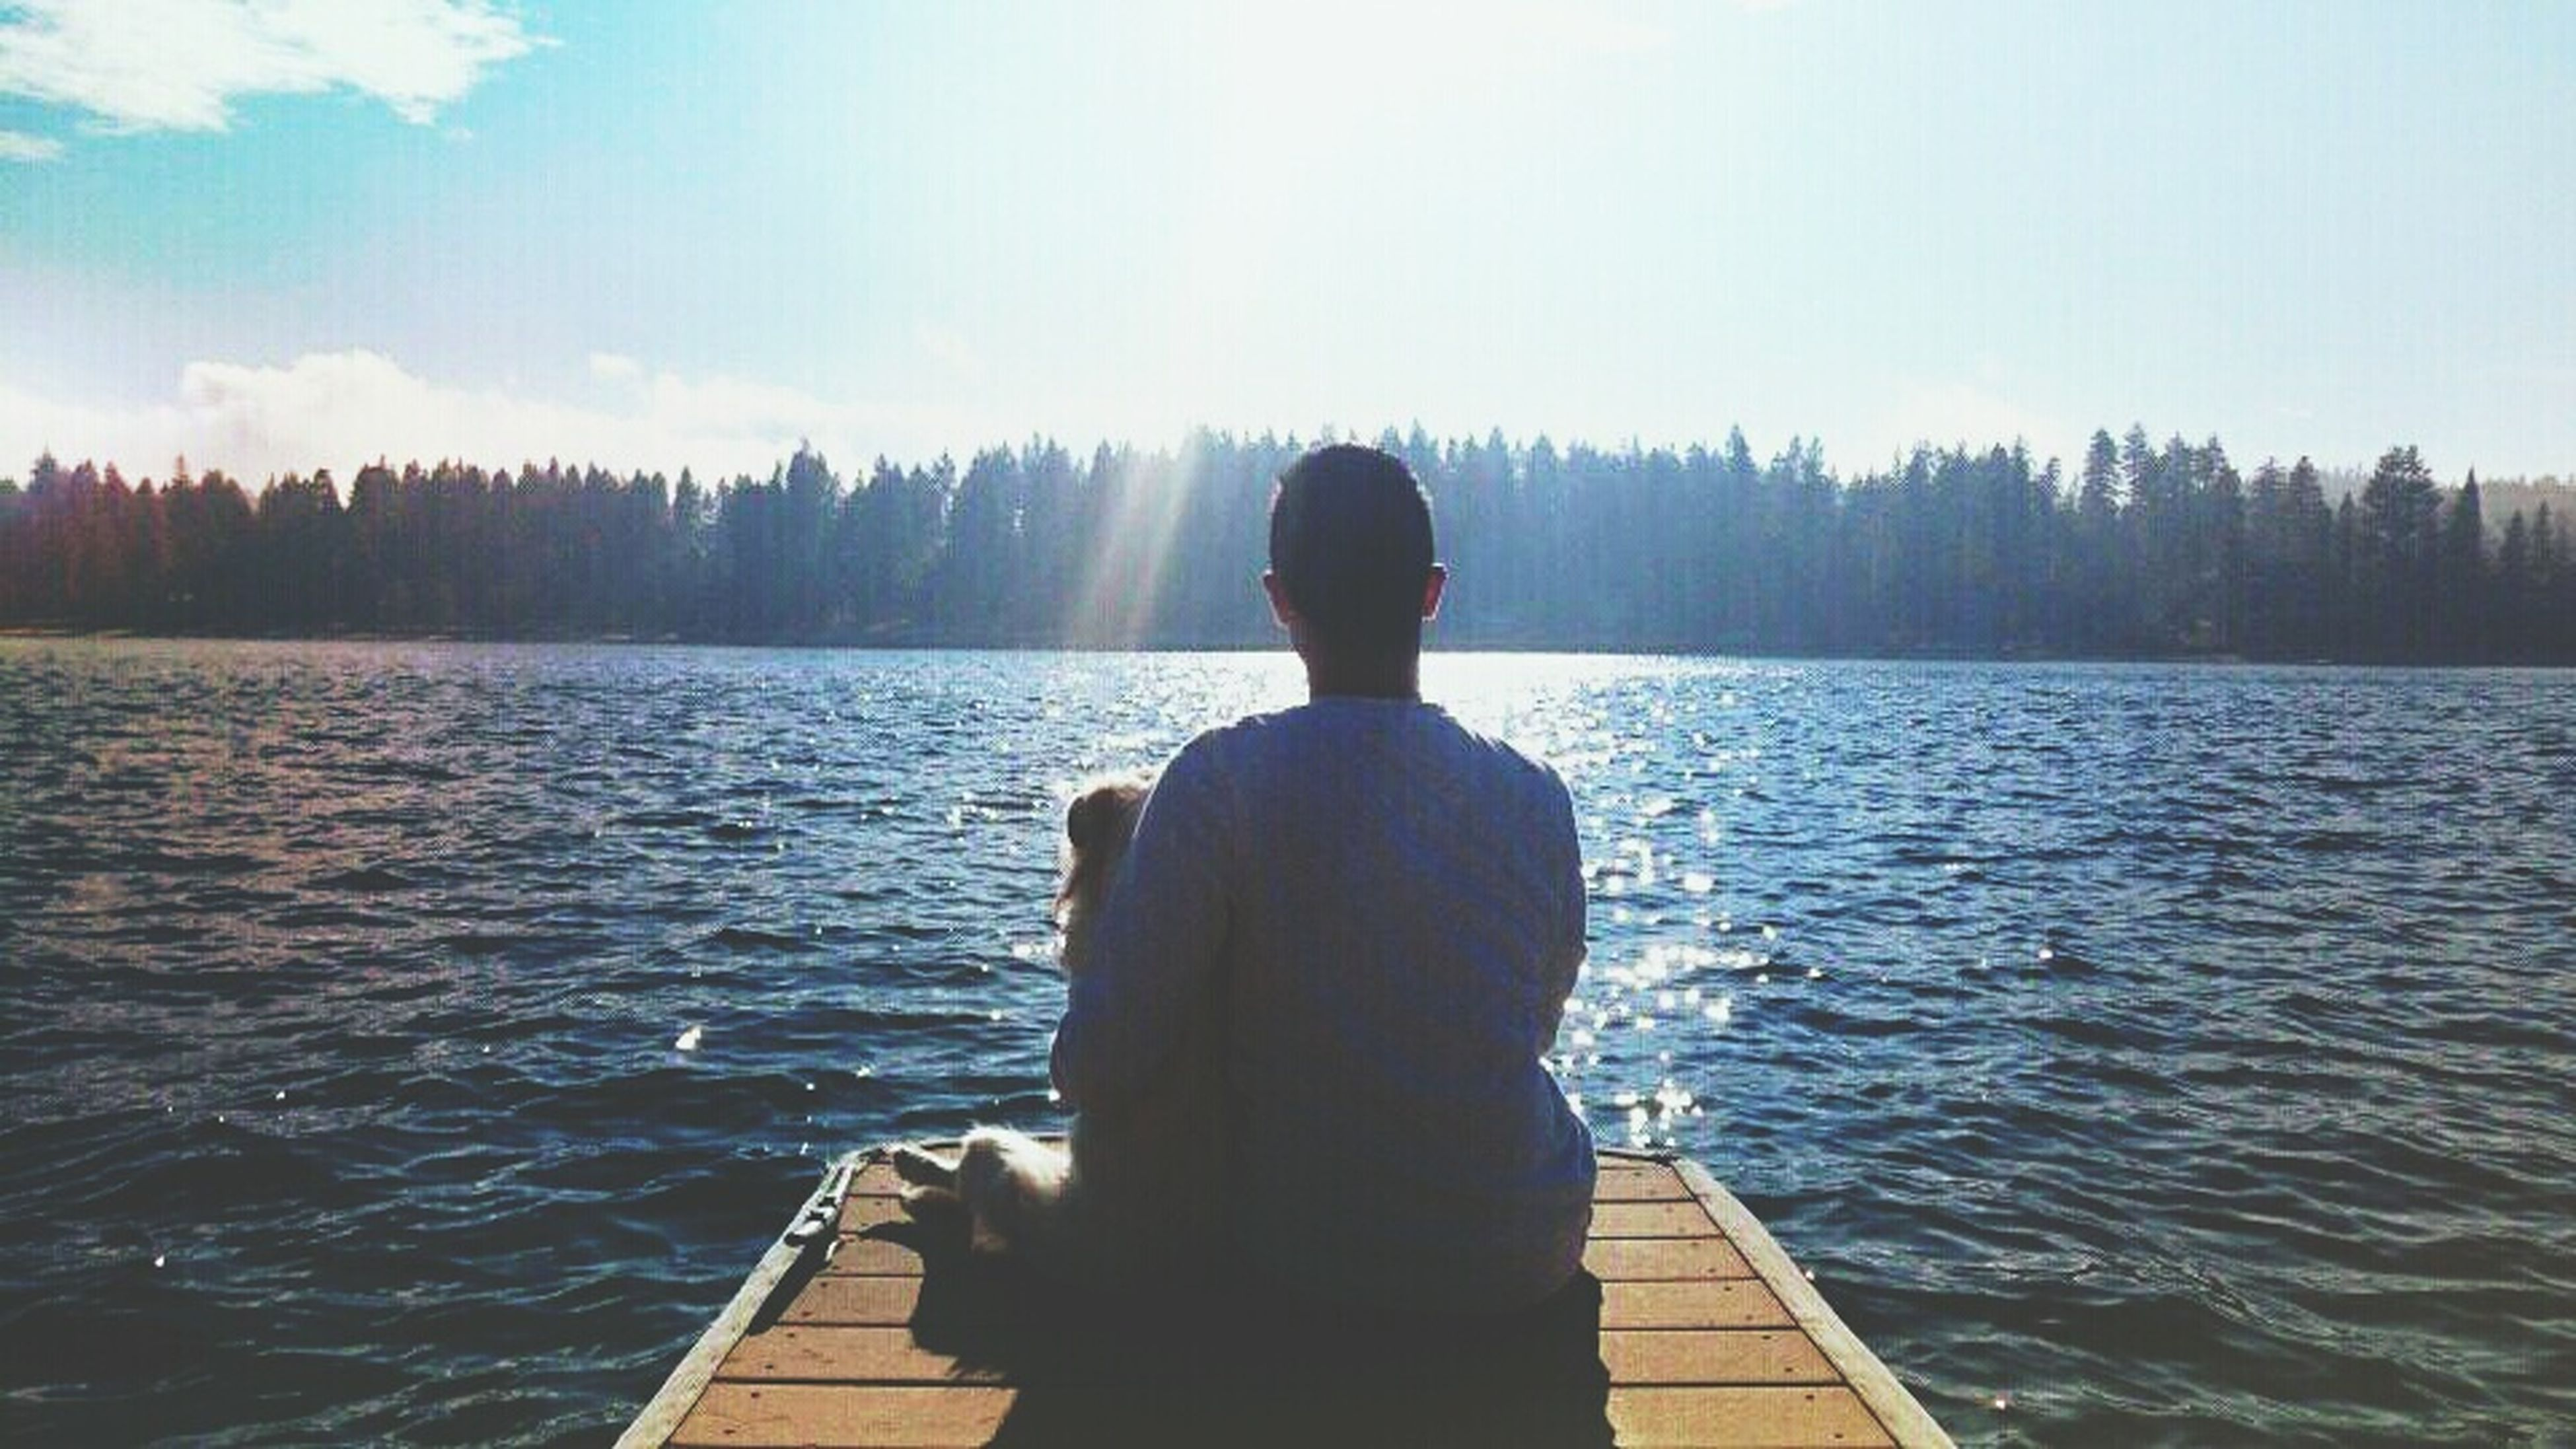 water, rear view, lifestyles, standing, leisure activity, lake, tranquility, tranquil scene, scenics, nature, beauty in nature, sky, three quarter length, looking at view, river, men, full length, waist up